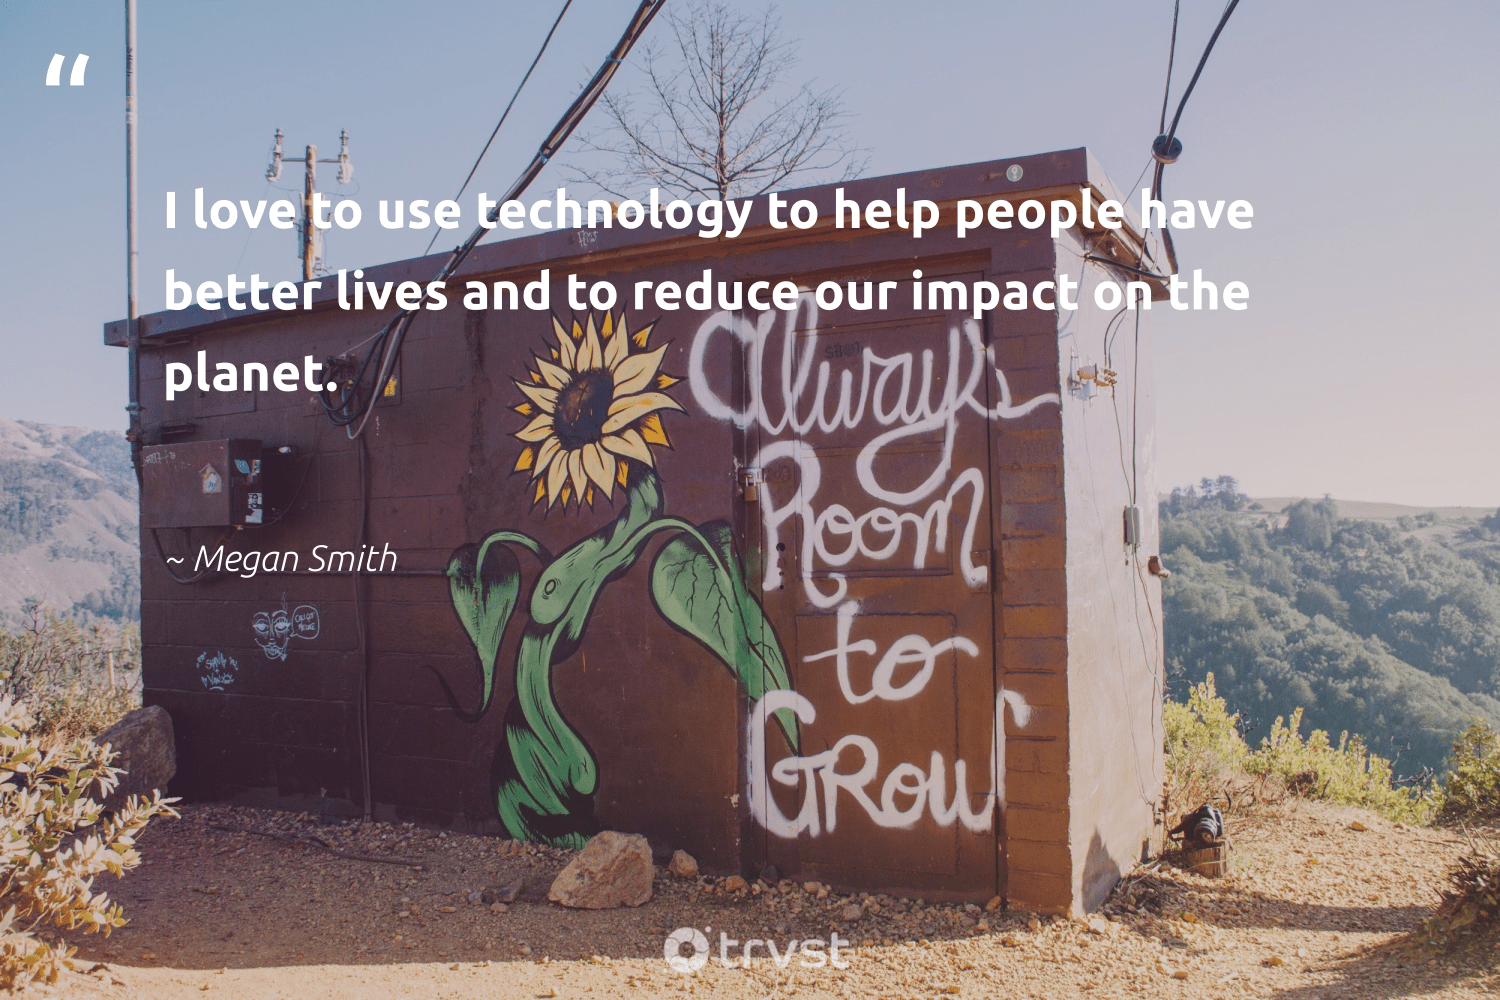 """I love to use technology to help people have better lives and to reduce our impact on the planet.""  - Megan Smith #trvst #quotes #impact #love #reduce #planet #upcycle #betterplanet #greenliving #dogood #recycle #socialchange"